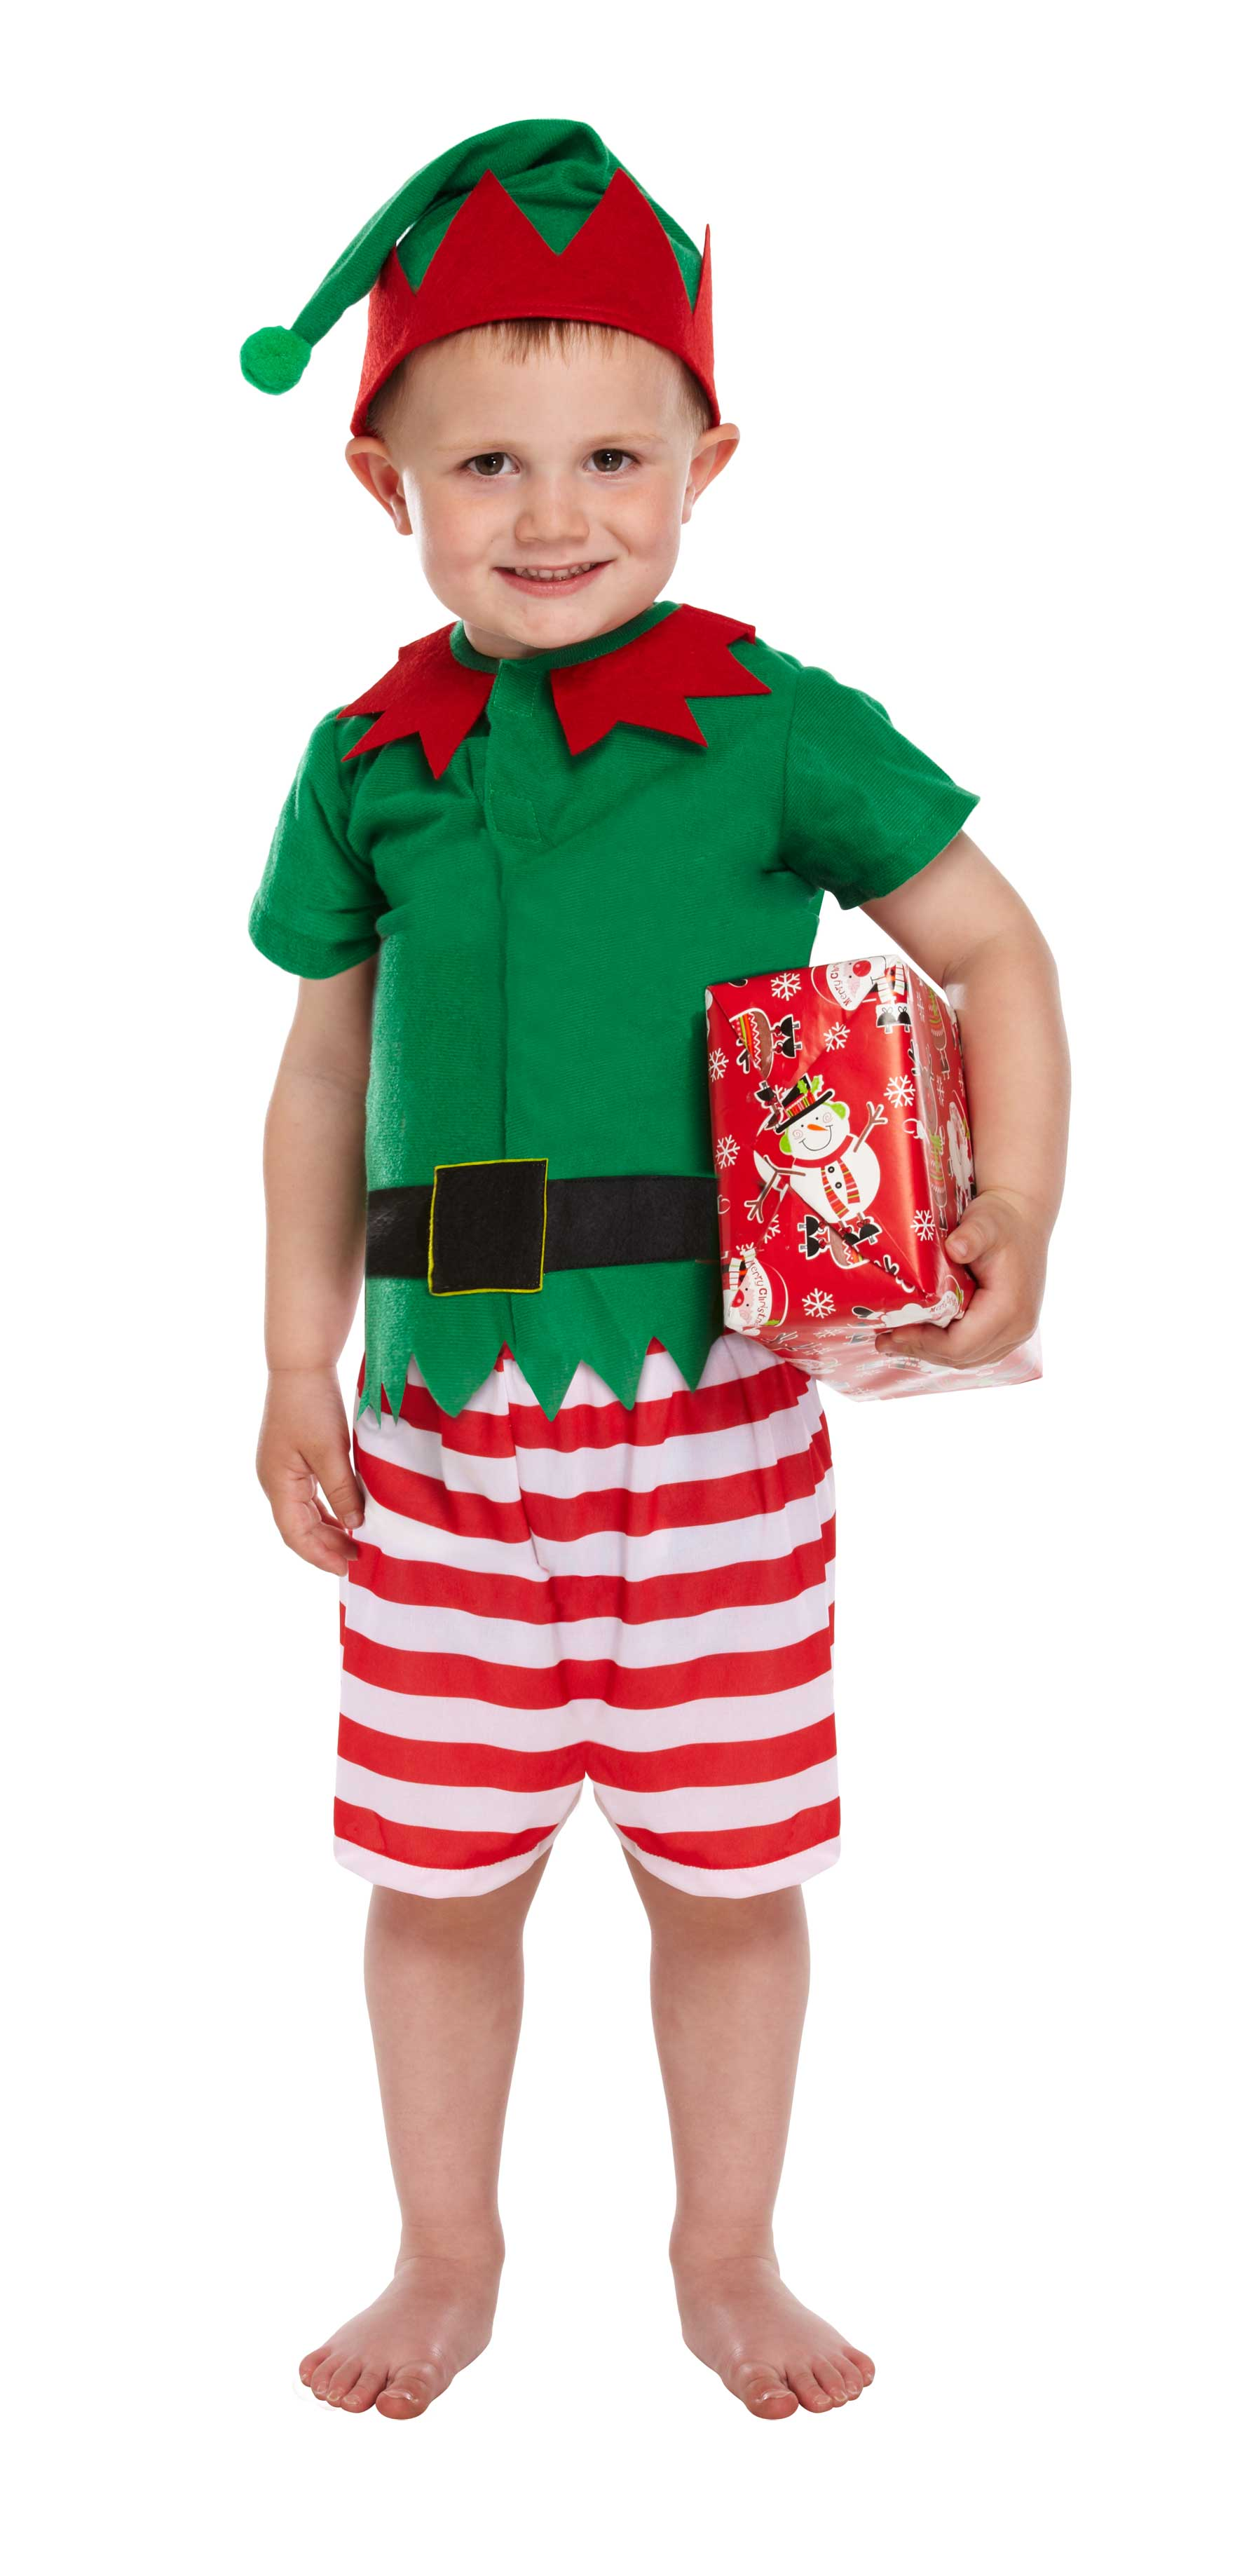 Toddler Santas Little Helper Boy 3 Yrs